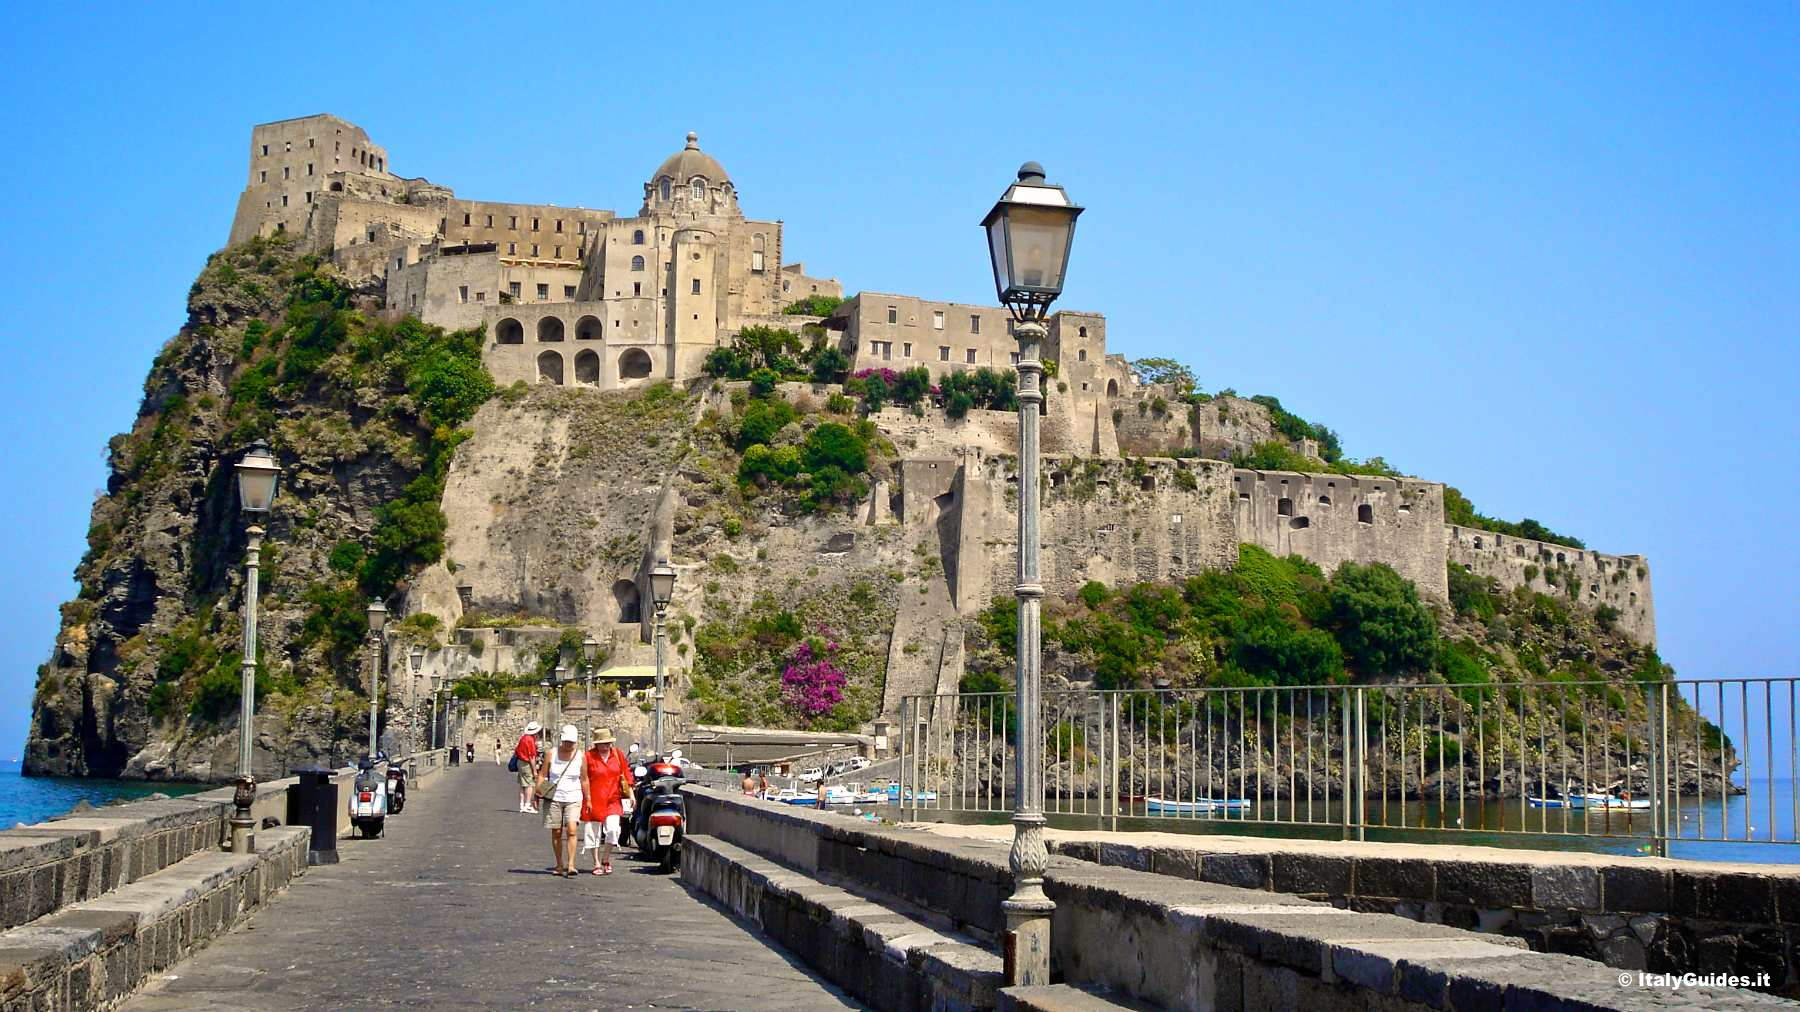 sorrento italy map with Pictures Of Ischia on Attraction Review G194863 D2480900 Reviews Private Day Tours Positano Amalfi Coast C ania in addition Roman Forum Rome Italy additionally Calabria Tourist Map also Carte geographique italiepag further Salo.